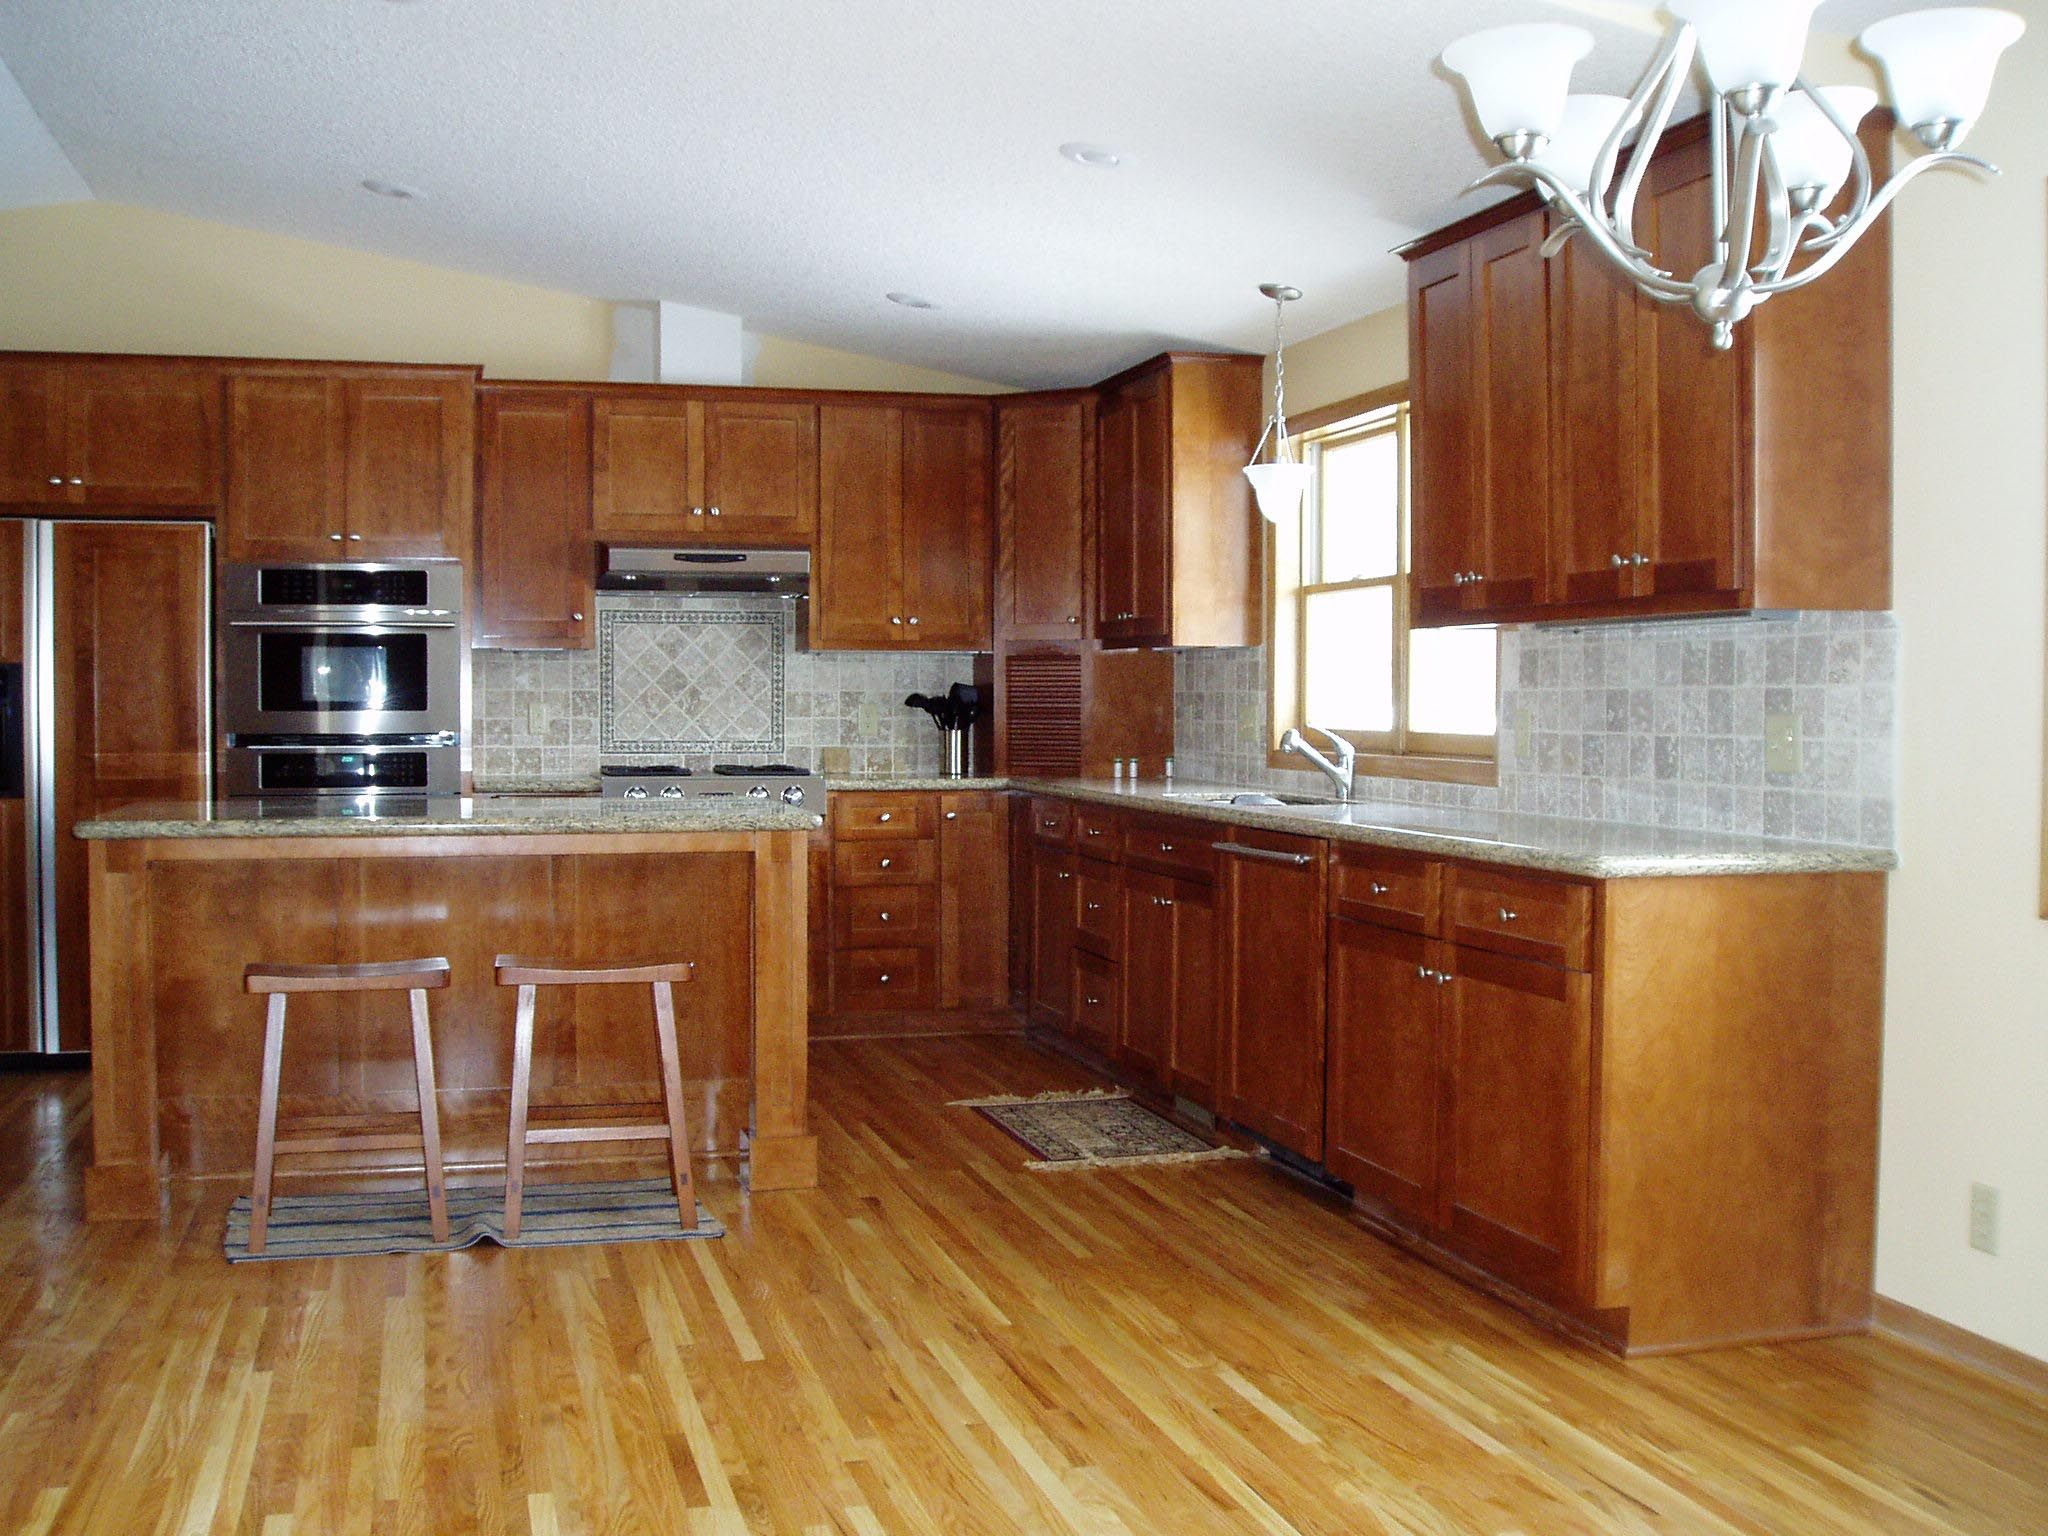 Hardwood Floors In Kitchen With Oak Cabinets Looking For Tips About  Woodworking? Http:/